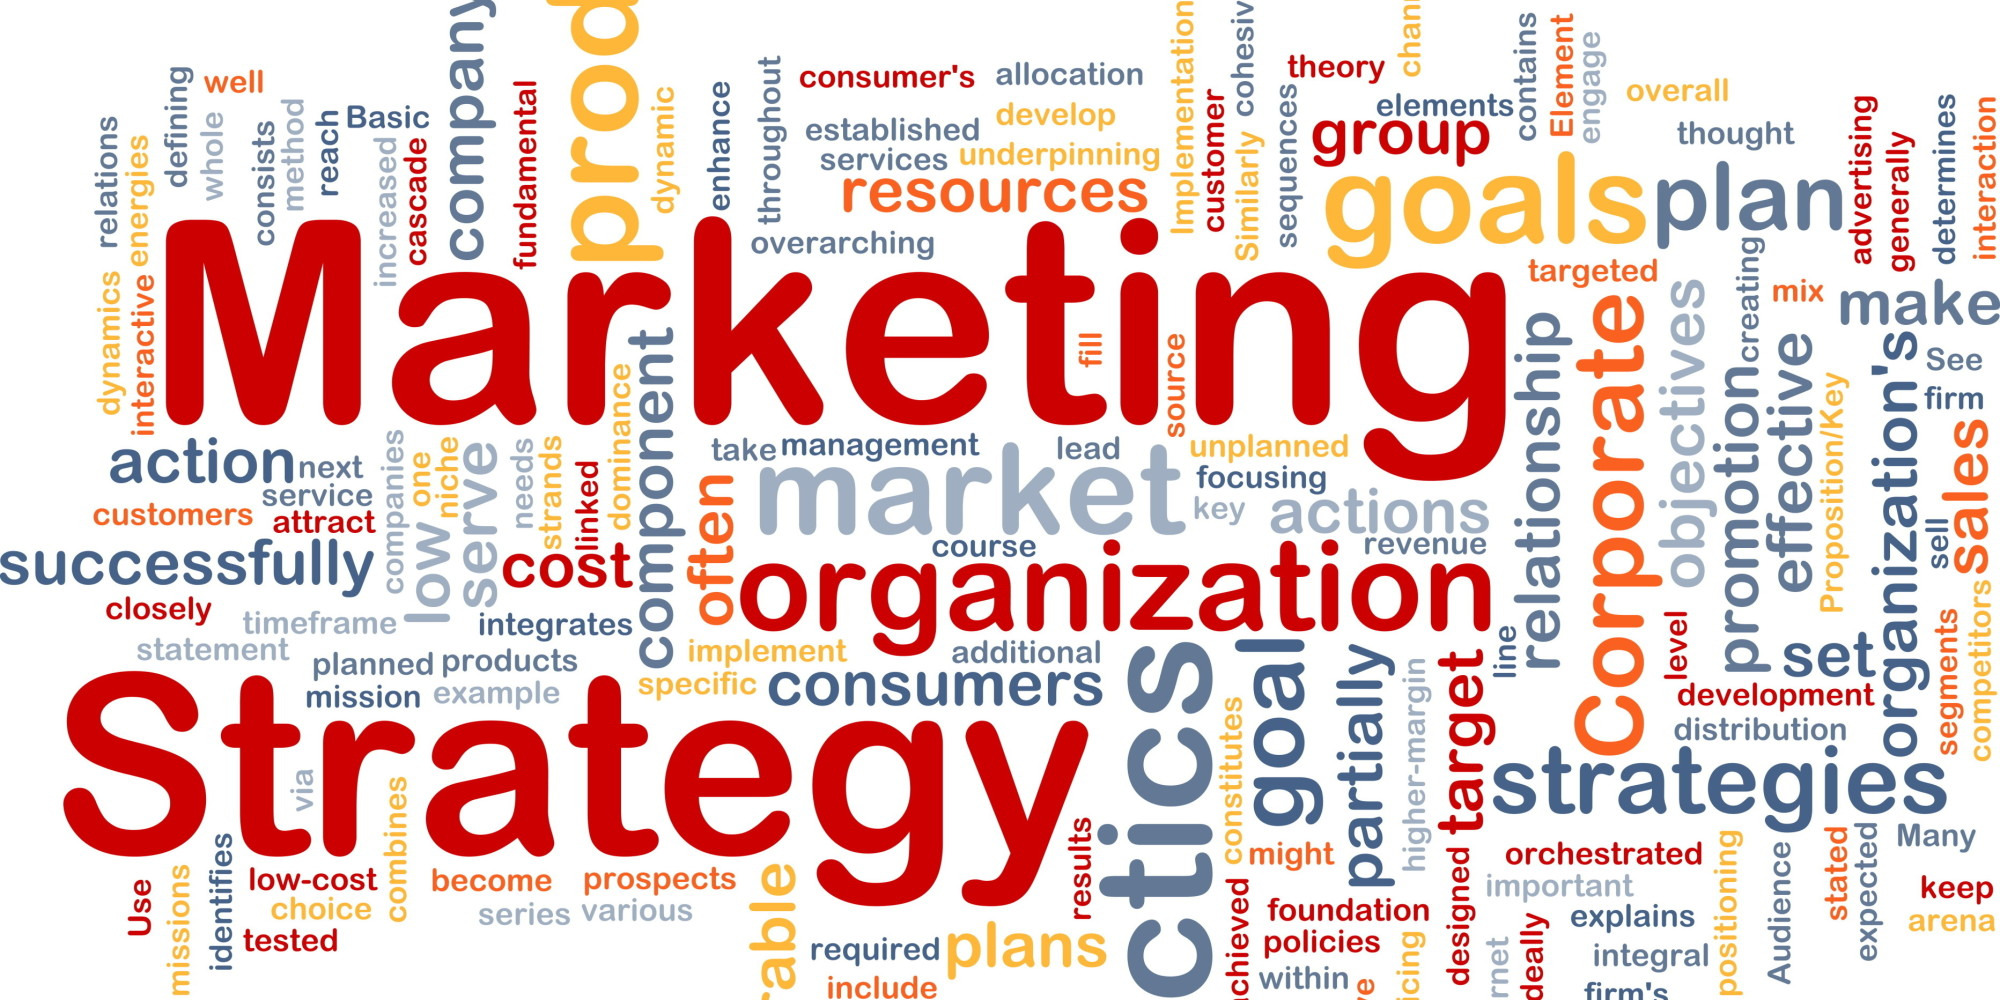 importance of marketing strategies in achieving organisational goals